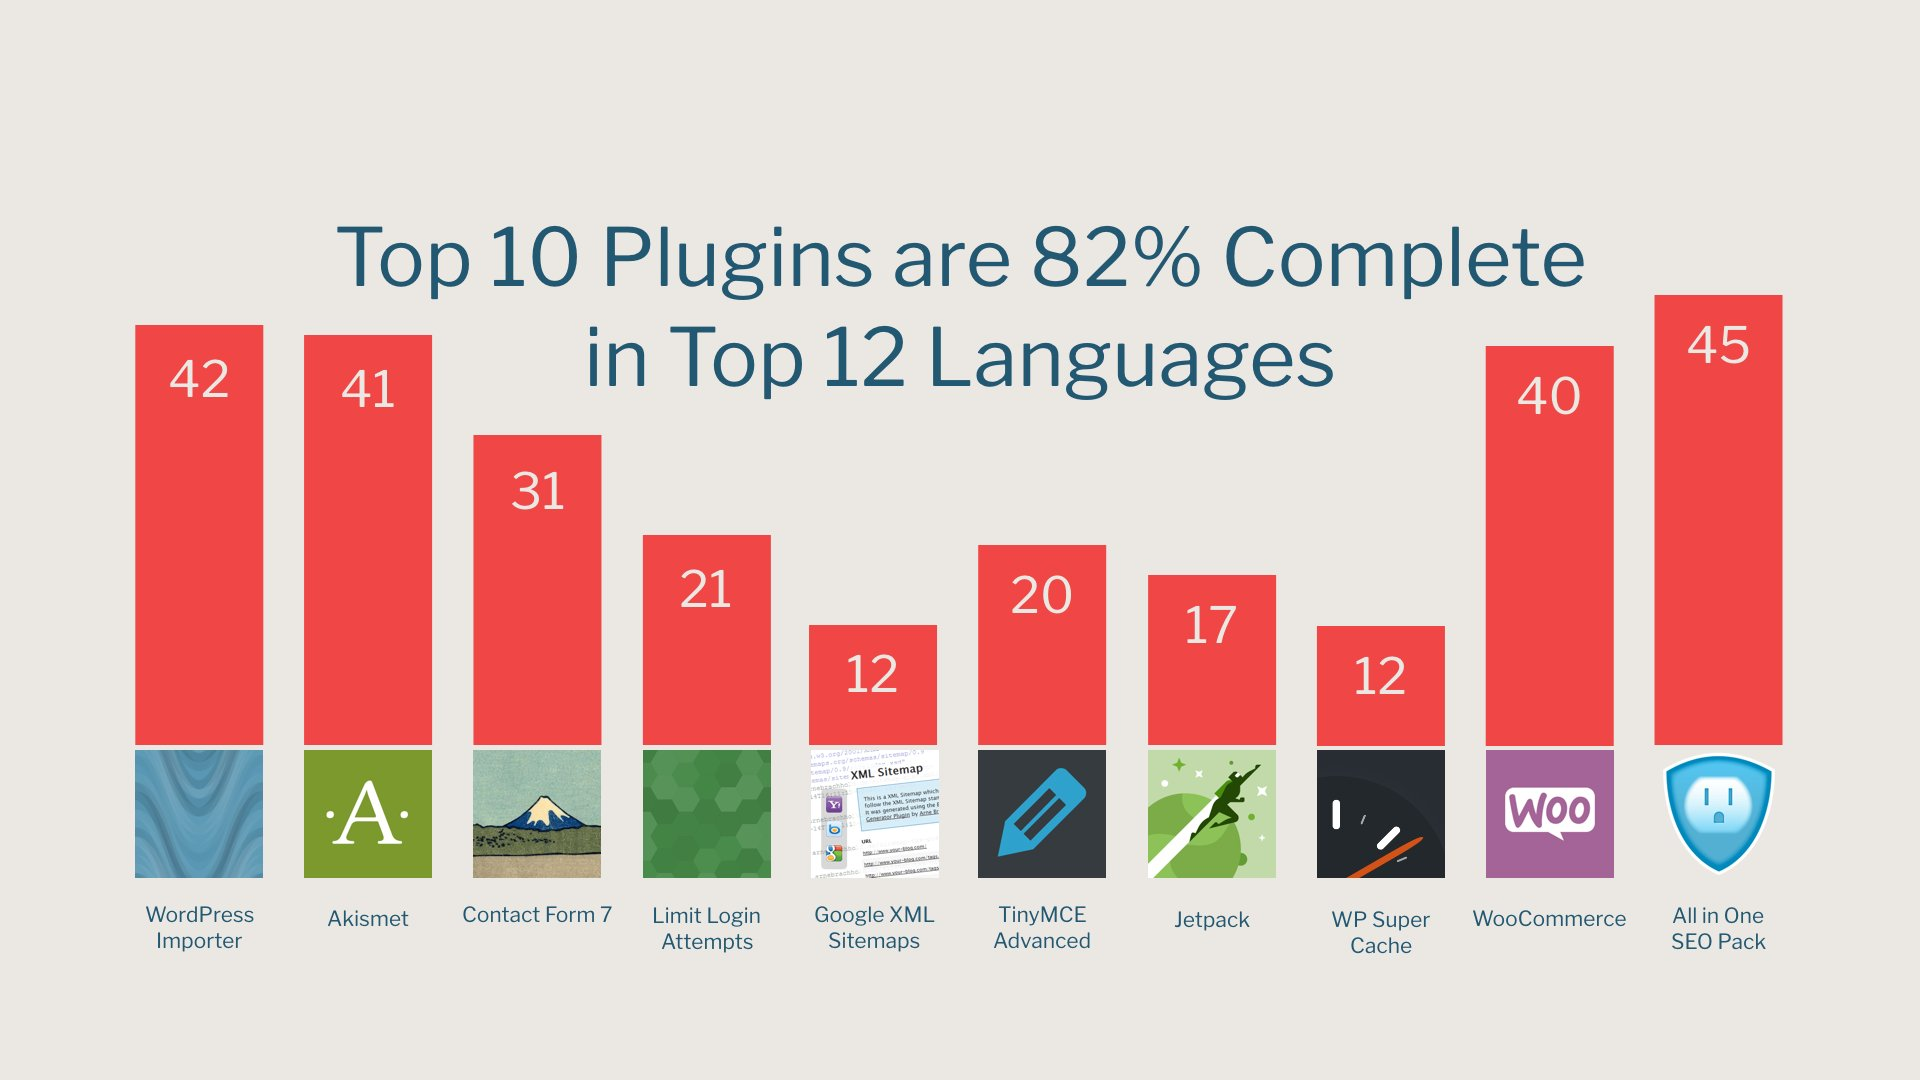 The top 10 plugins are 82% complete in the top 12 languages. #wcus https://t.co/LnpEGv0p7o